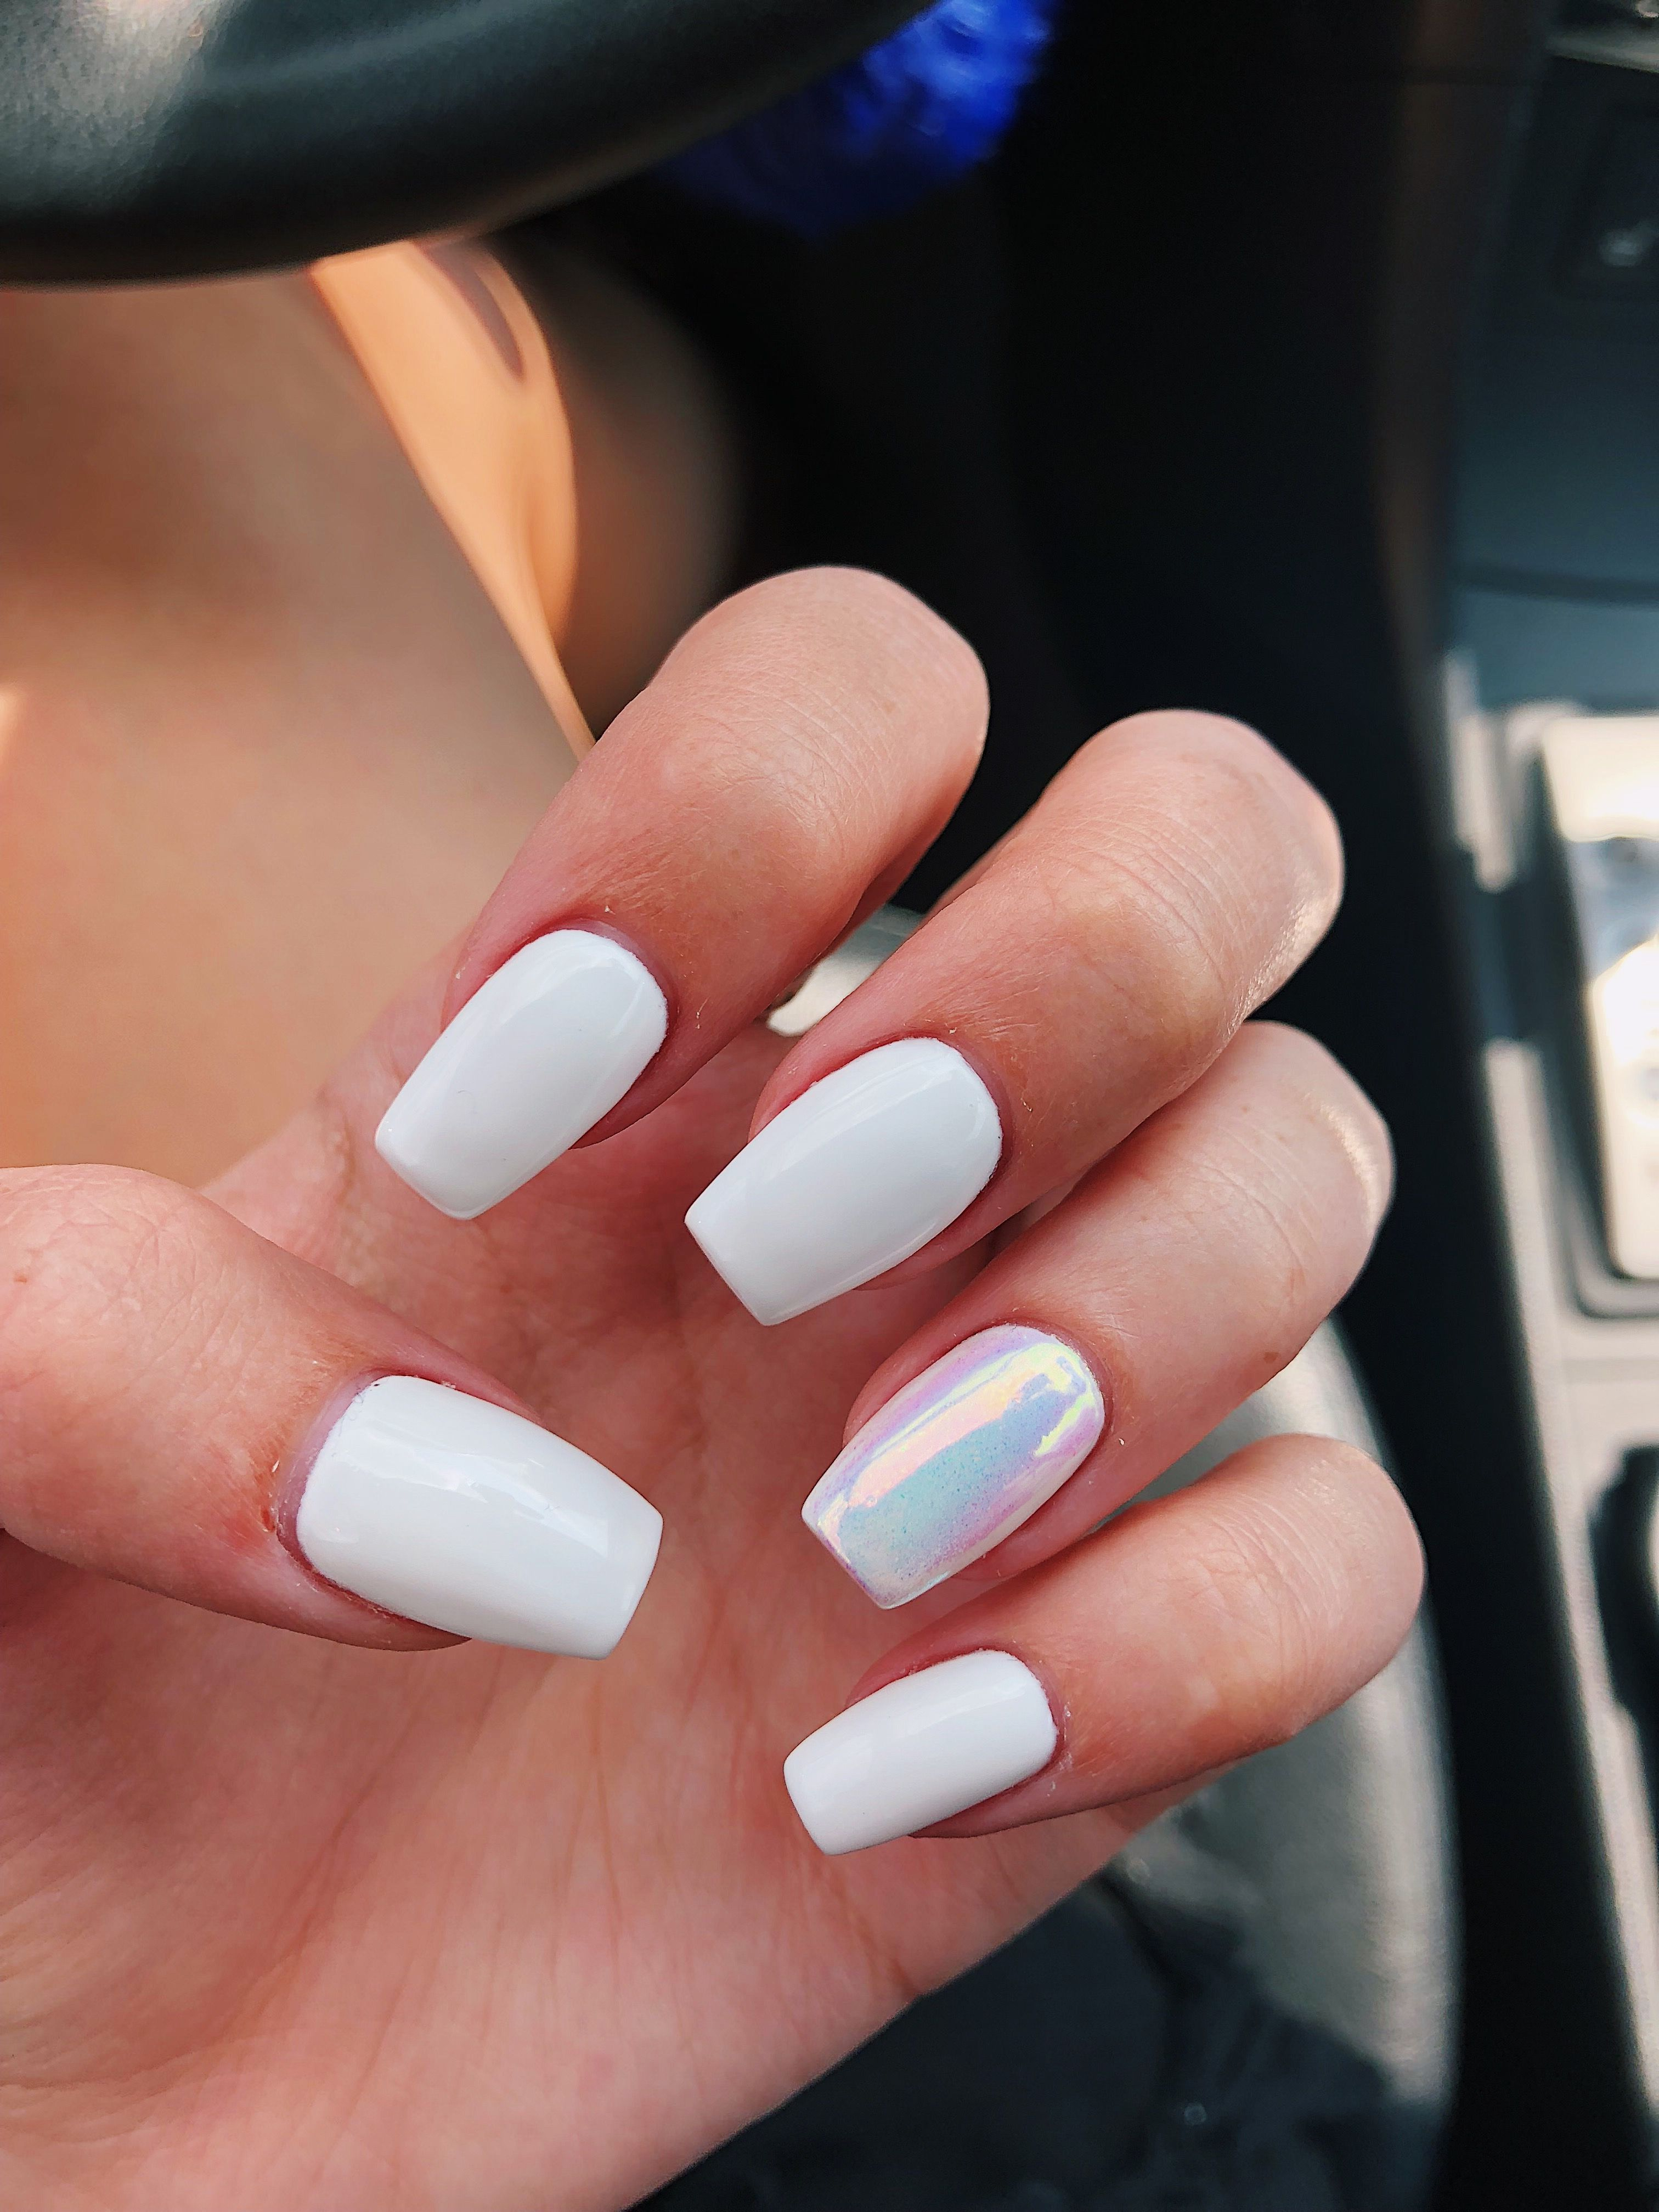 Natural Way To Whiten Yellow Nails A Quick Trick To Make Your Nails Look Whiter Beauty And Makeup Tips Stained Nails Beauty Hacks Yellow Nails